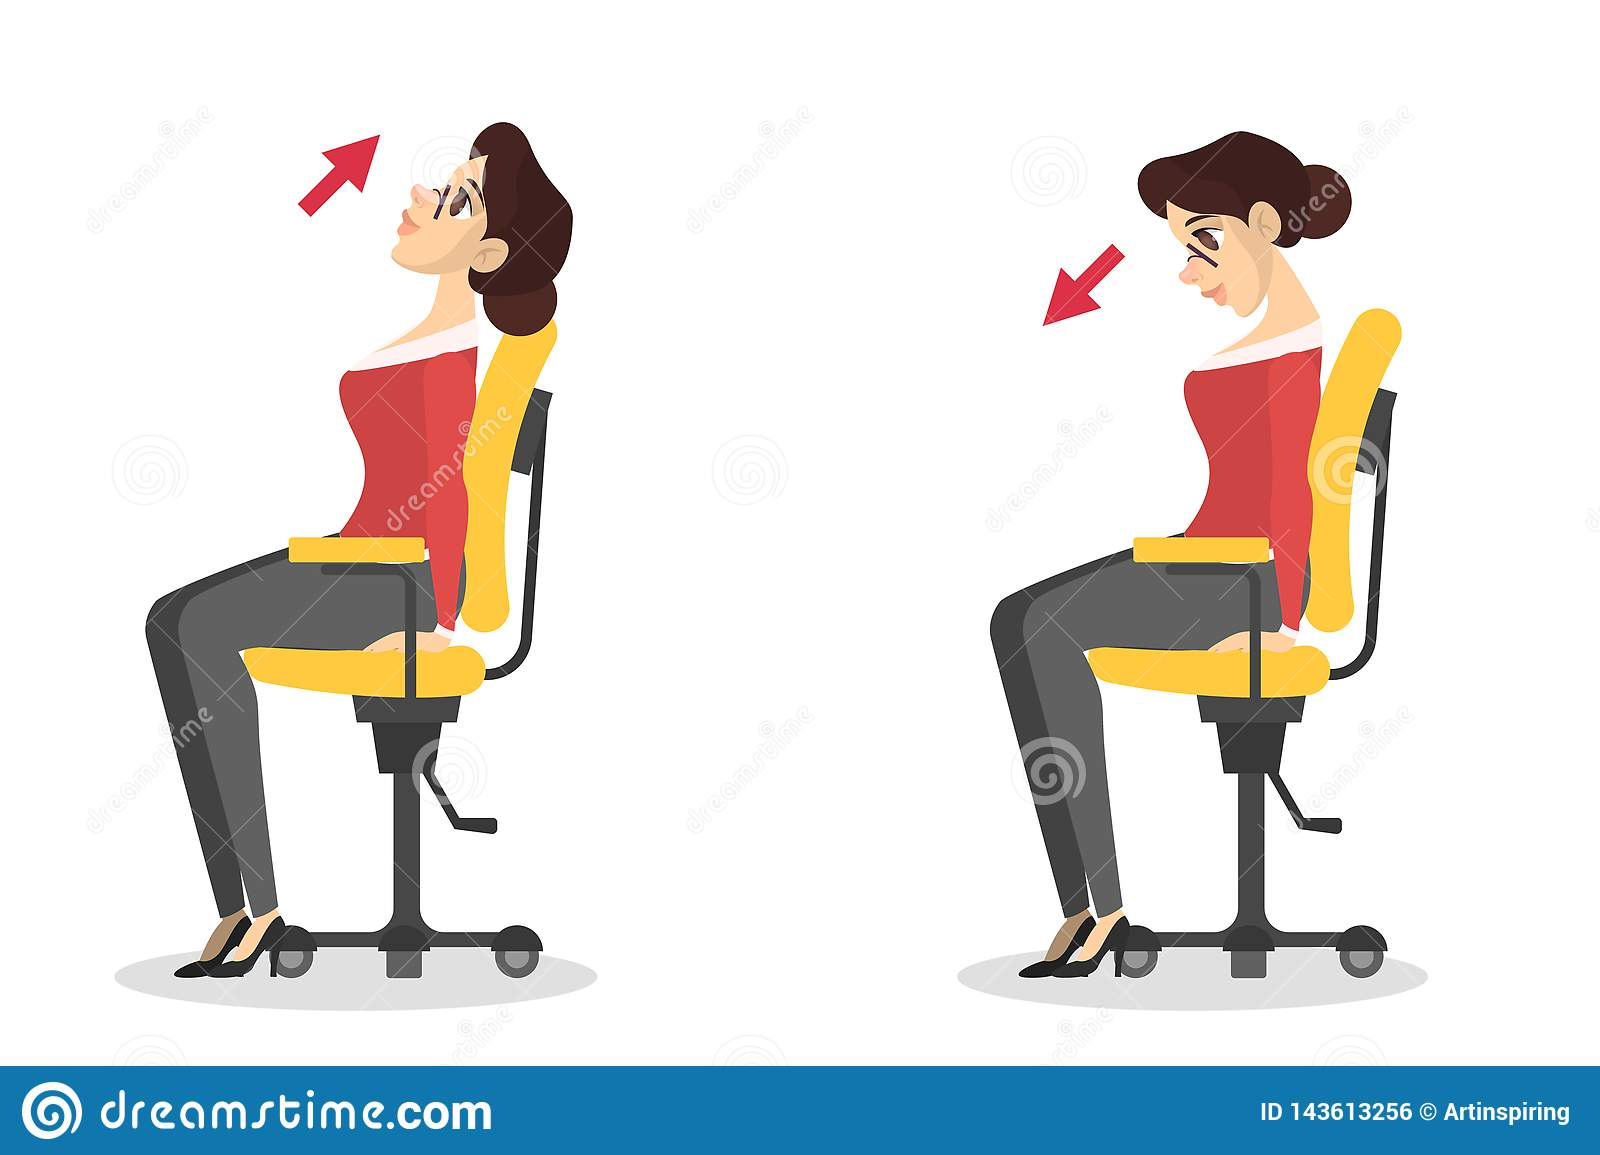 Woman Doing Exercise For Neck Stretch In Office Stock Vector Illustration Of Cartoon Healthy 143613256